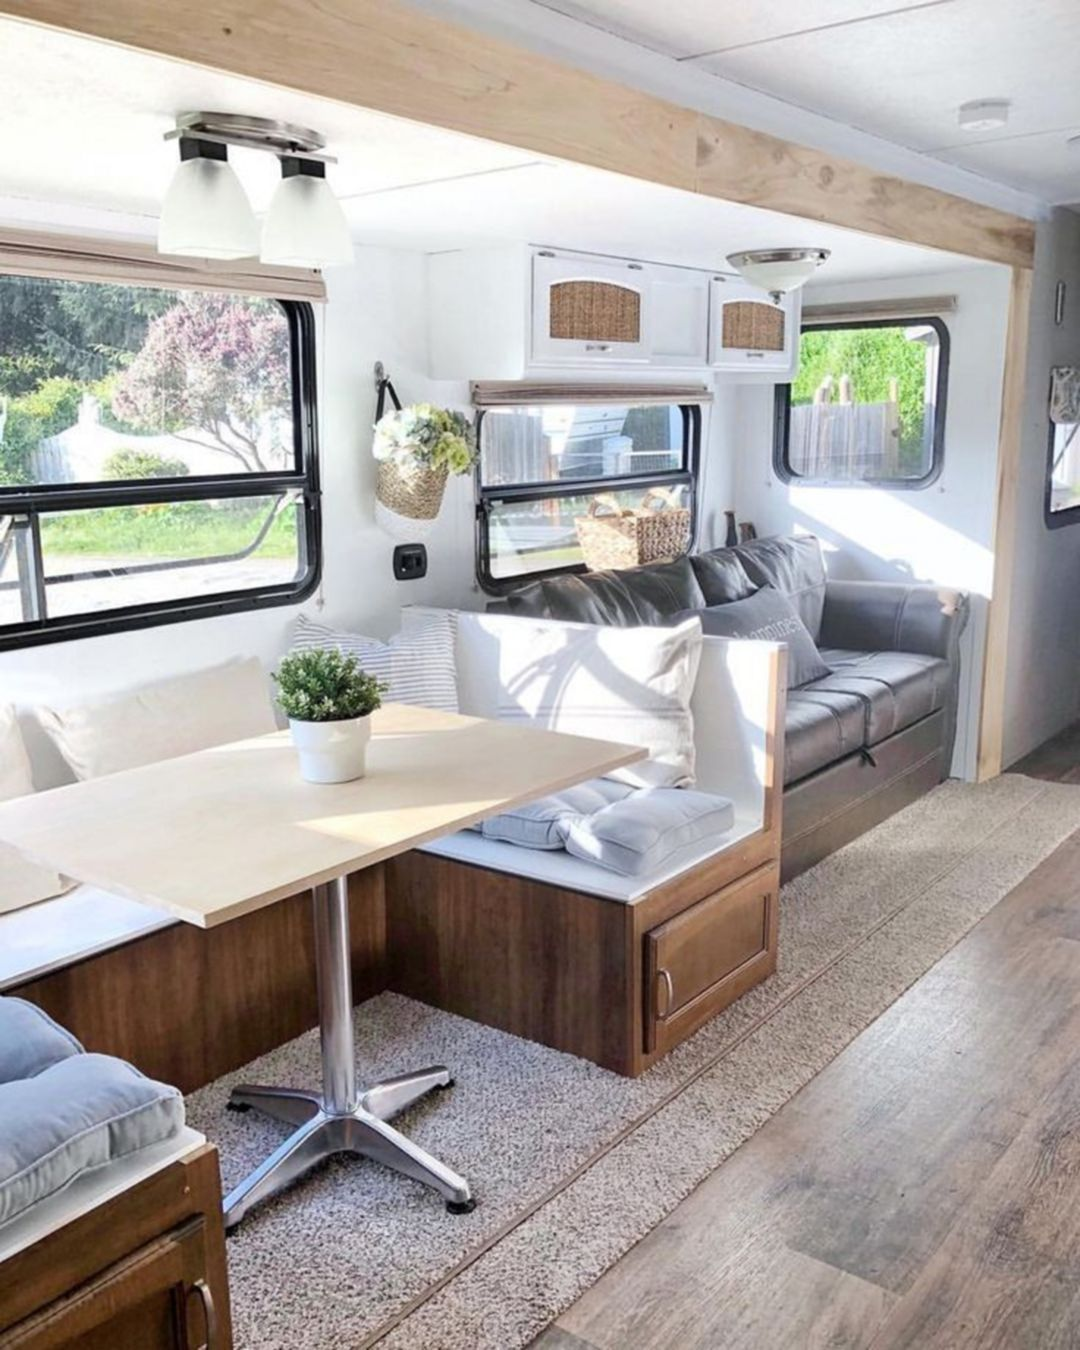 Top 20 Rv Dining Table Design Ideas For Best Rv Dining Space Inspiration Remodeled Campers Camper Makeover